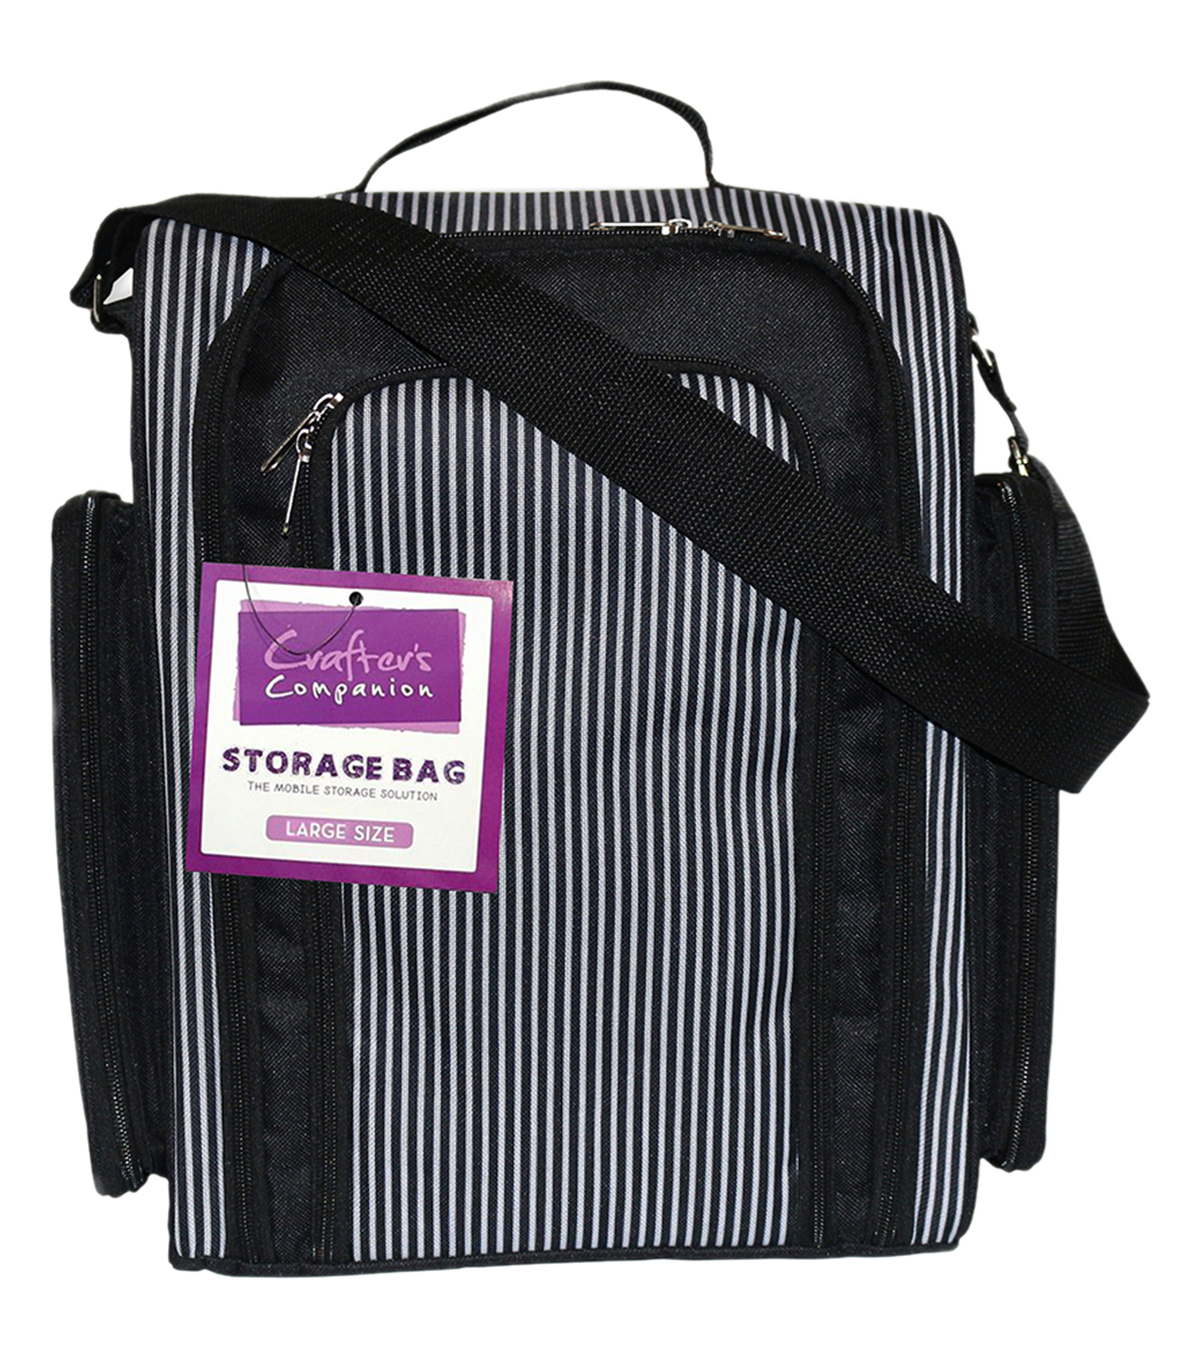 Crafter's Companion Spectrum Noir Large Storage Bag